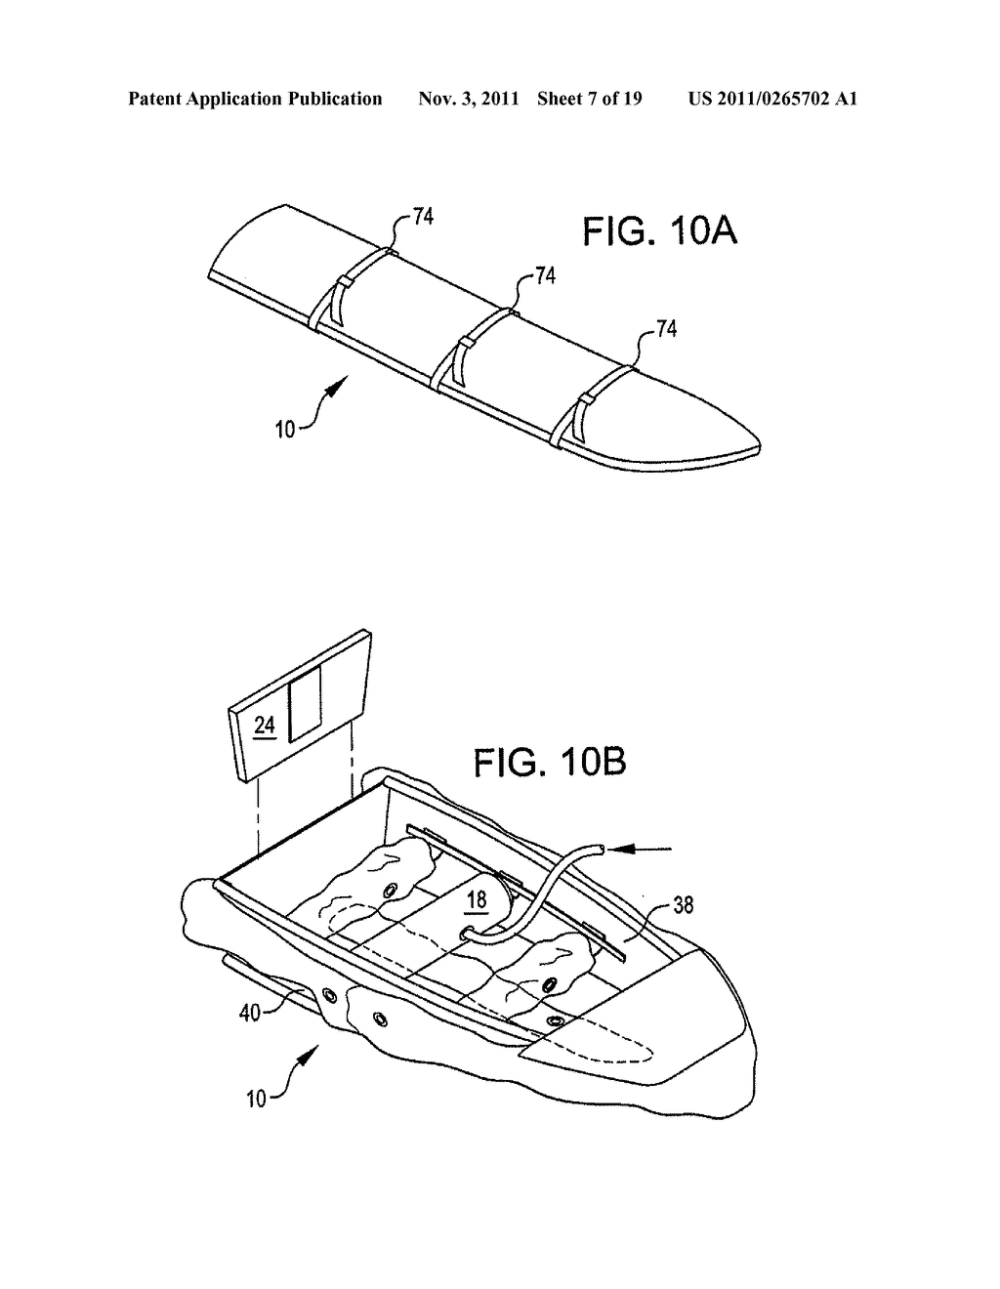 medium resolution of folding transom for a collapsible boat diagram schematic and image 08